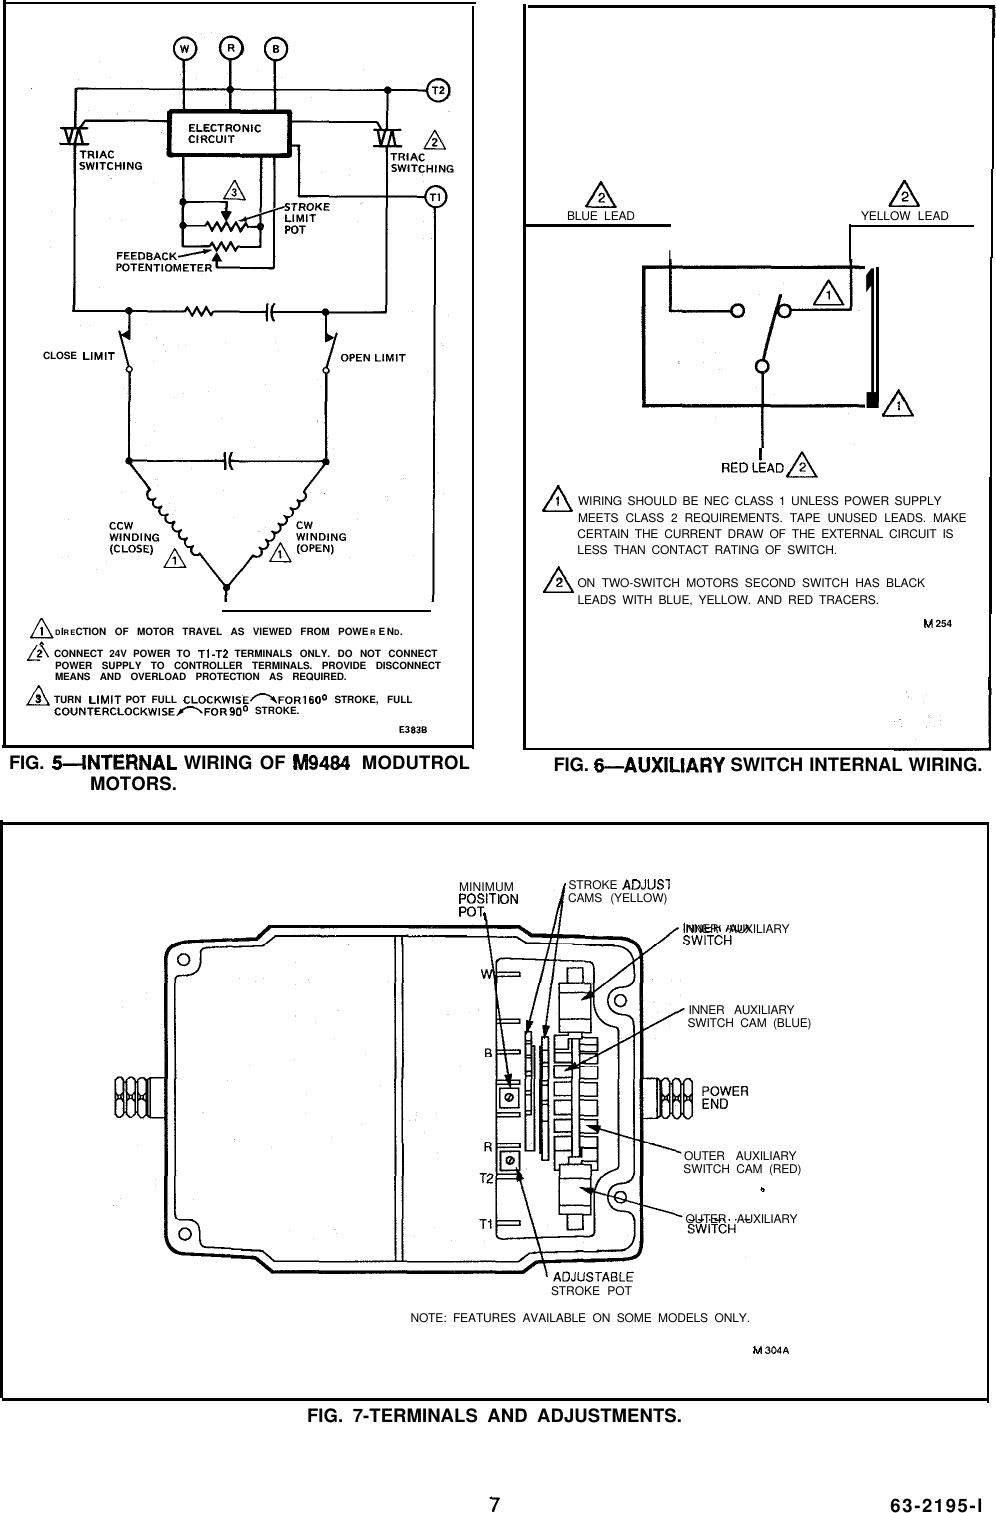 Honeywell T775 Modulating Control Wiring Diagram. . Wiring ... on